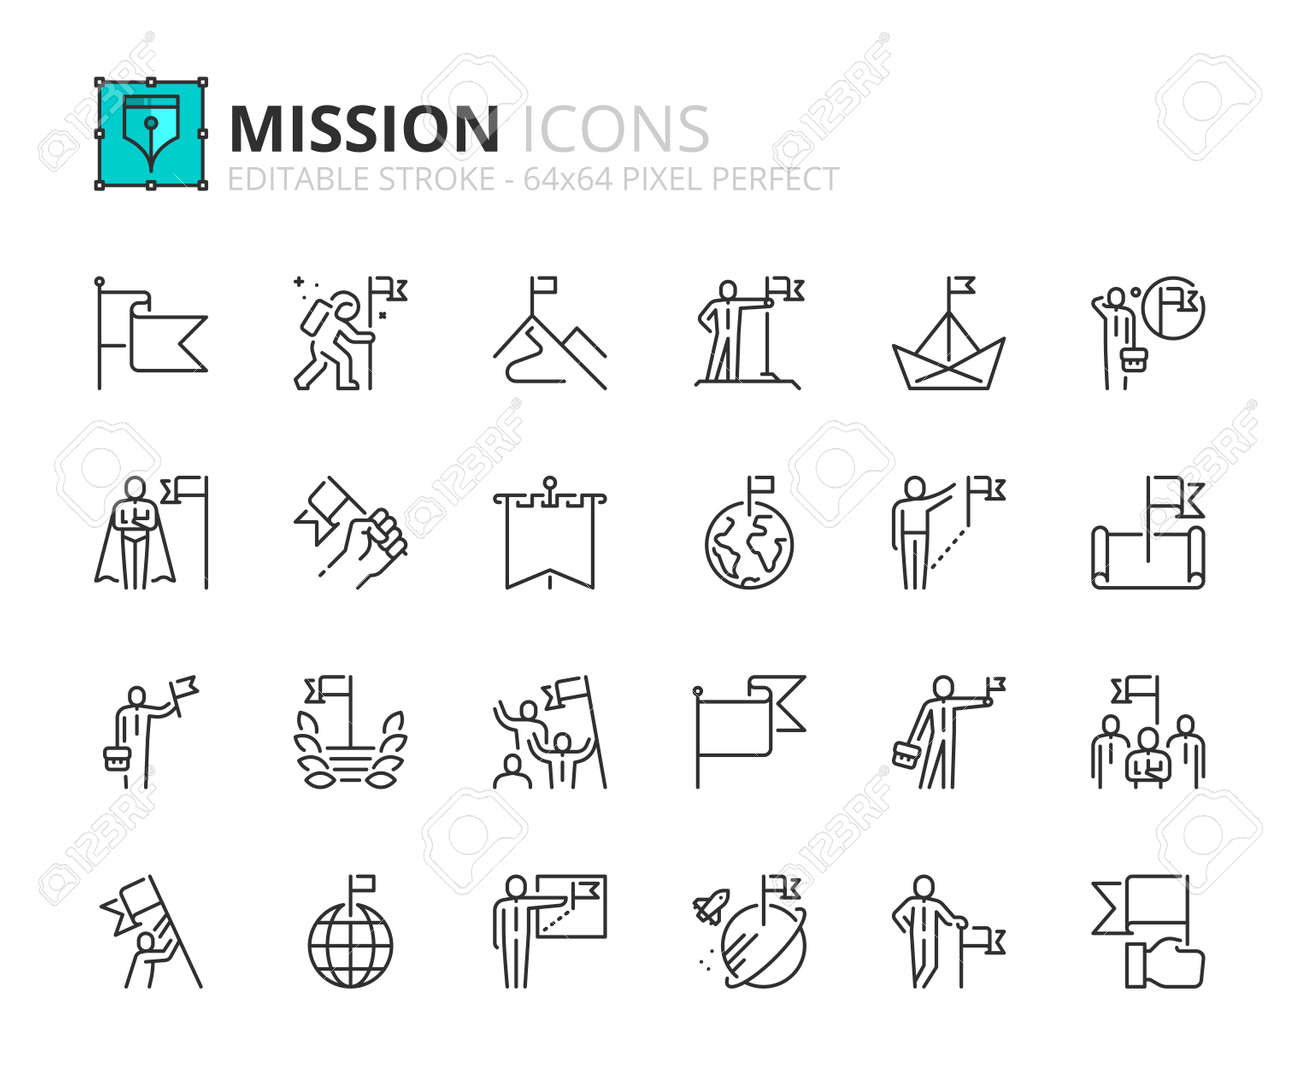 Outline icons about mission. Business concepts. Contains such icons as businessman with flag, achievement and goal. Editable stroke Vector 64x64 pixel perfect - 158671258